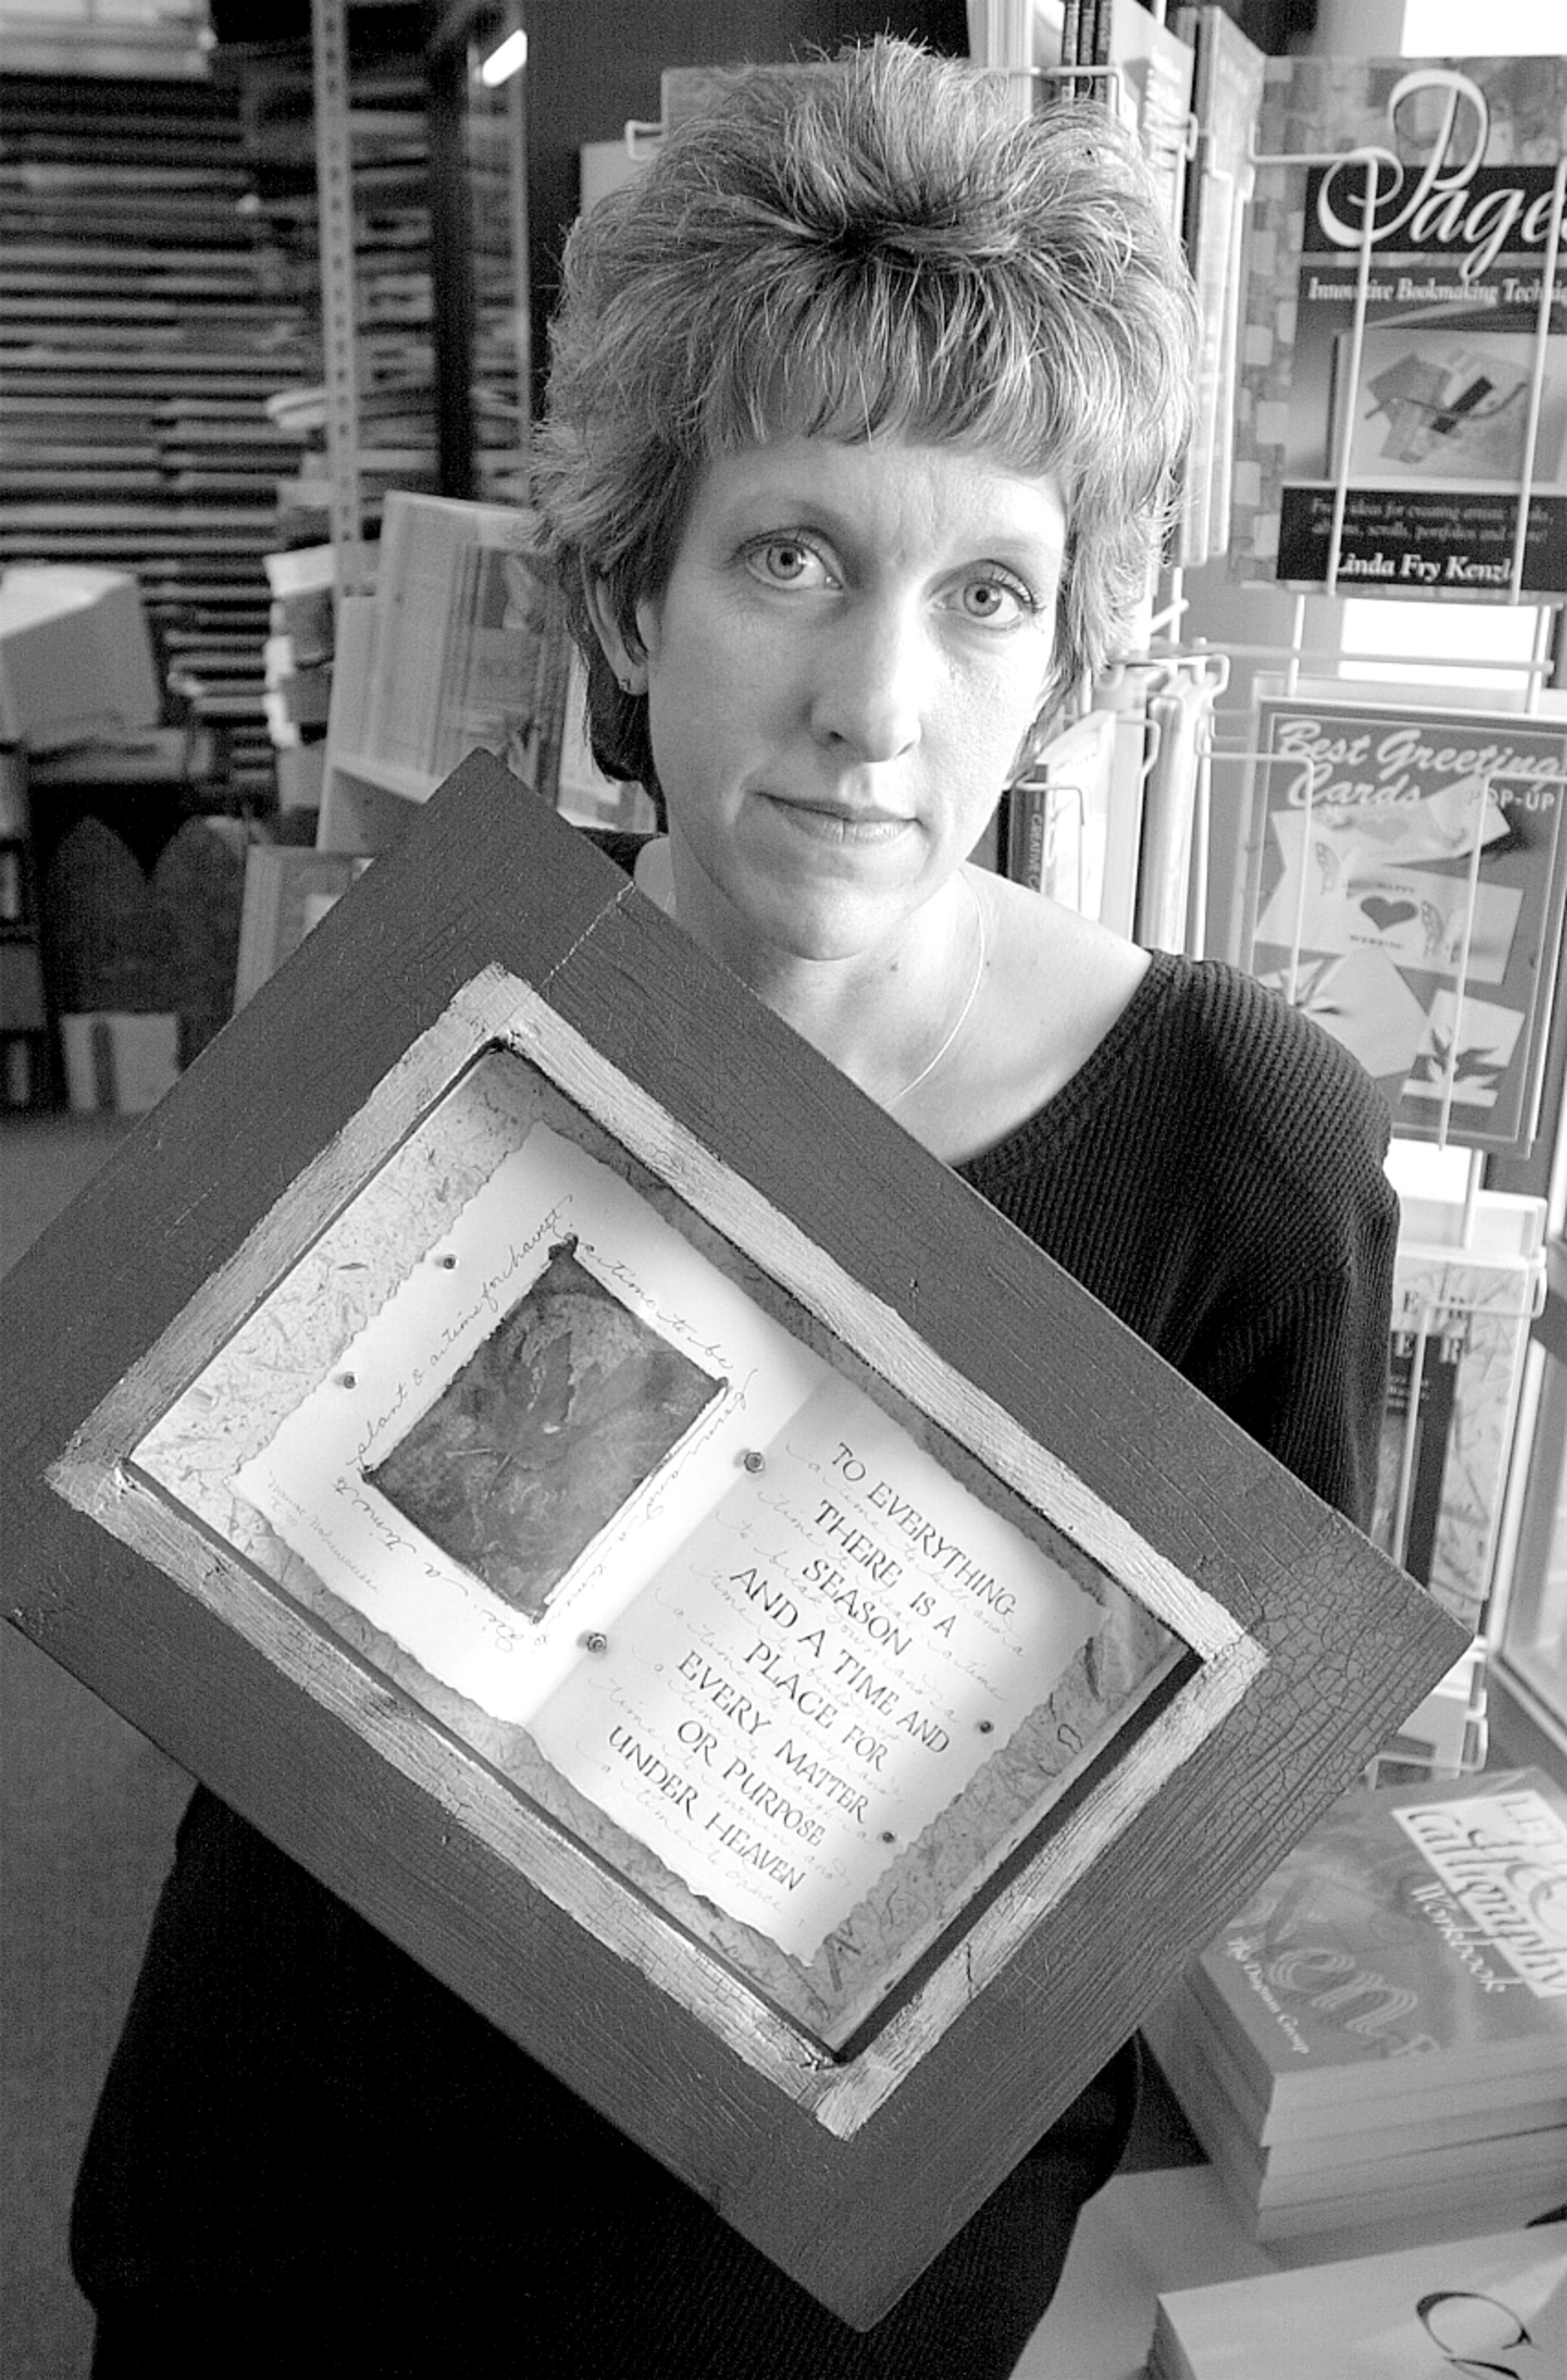 Patti Monroe-Mohrenweiser with Artwork at Hollander's, November 2000 image